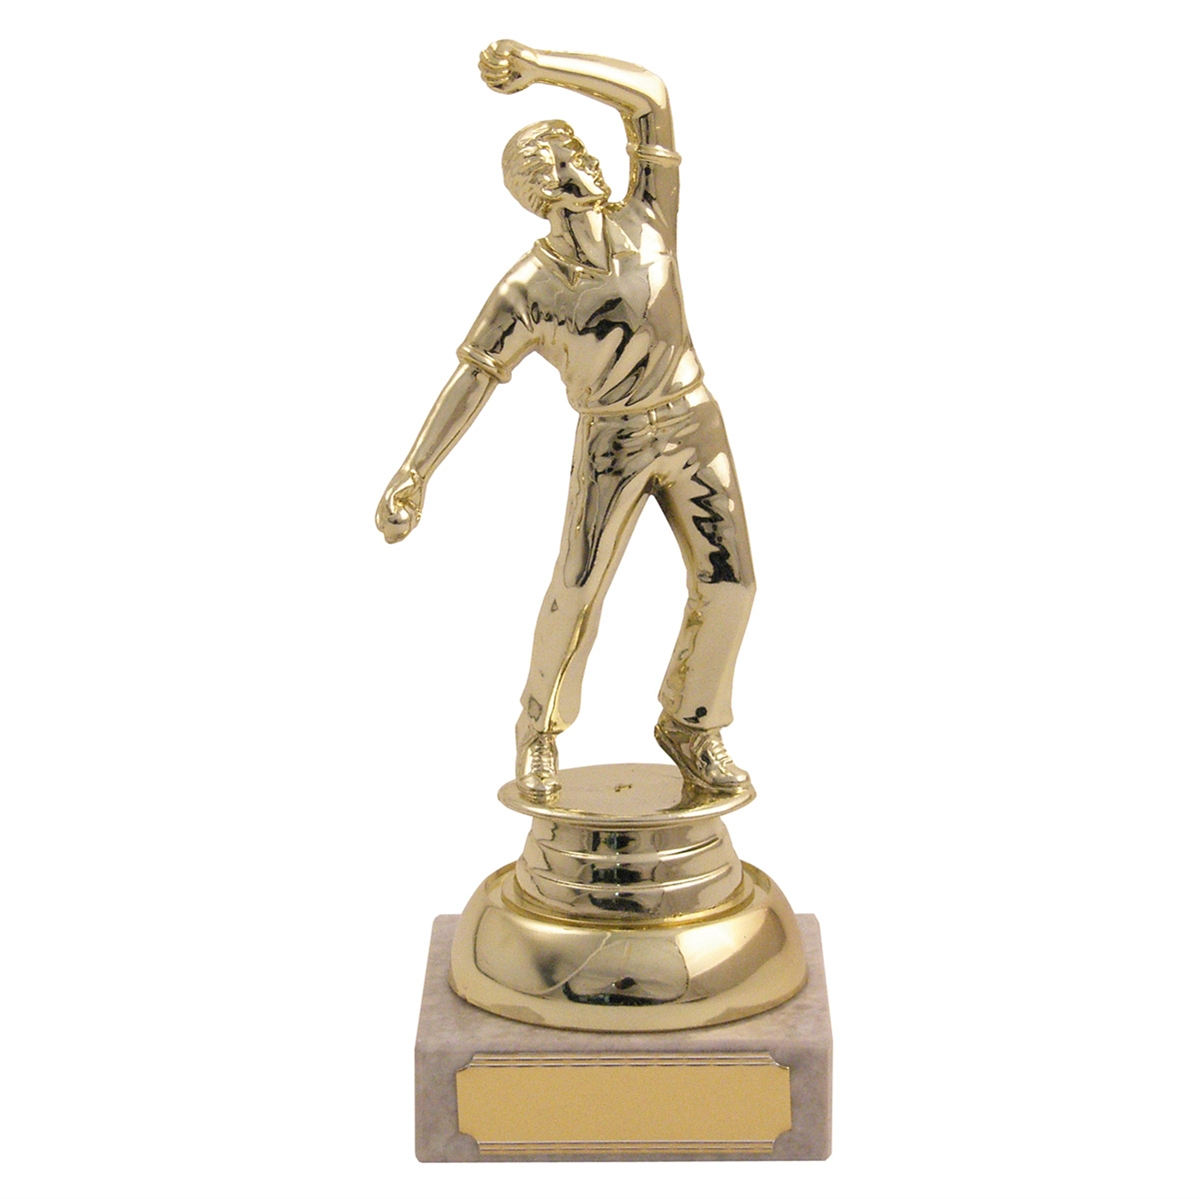 Cricket Action Bowler Trophy zoomed